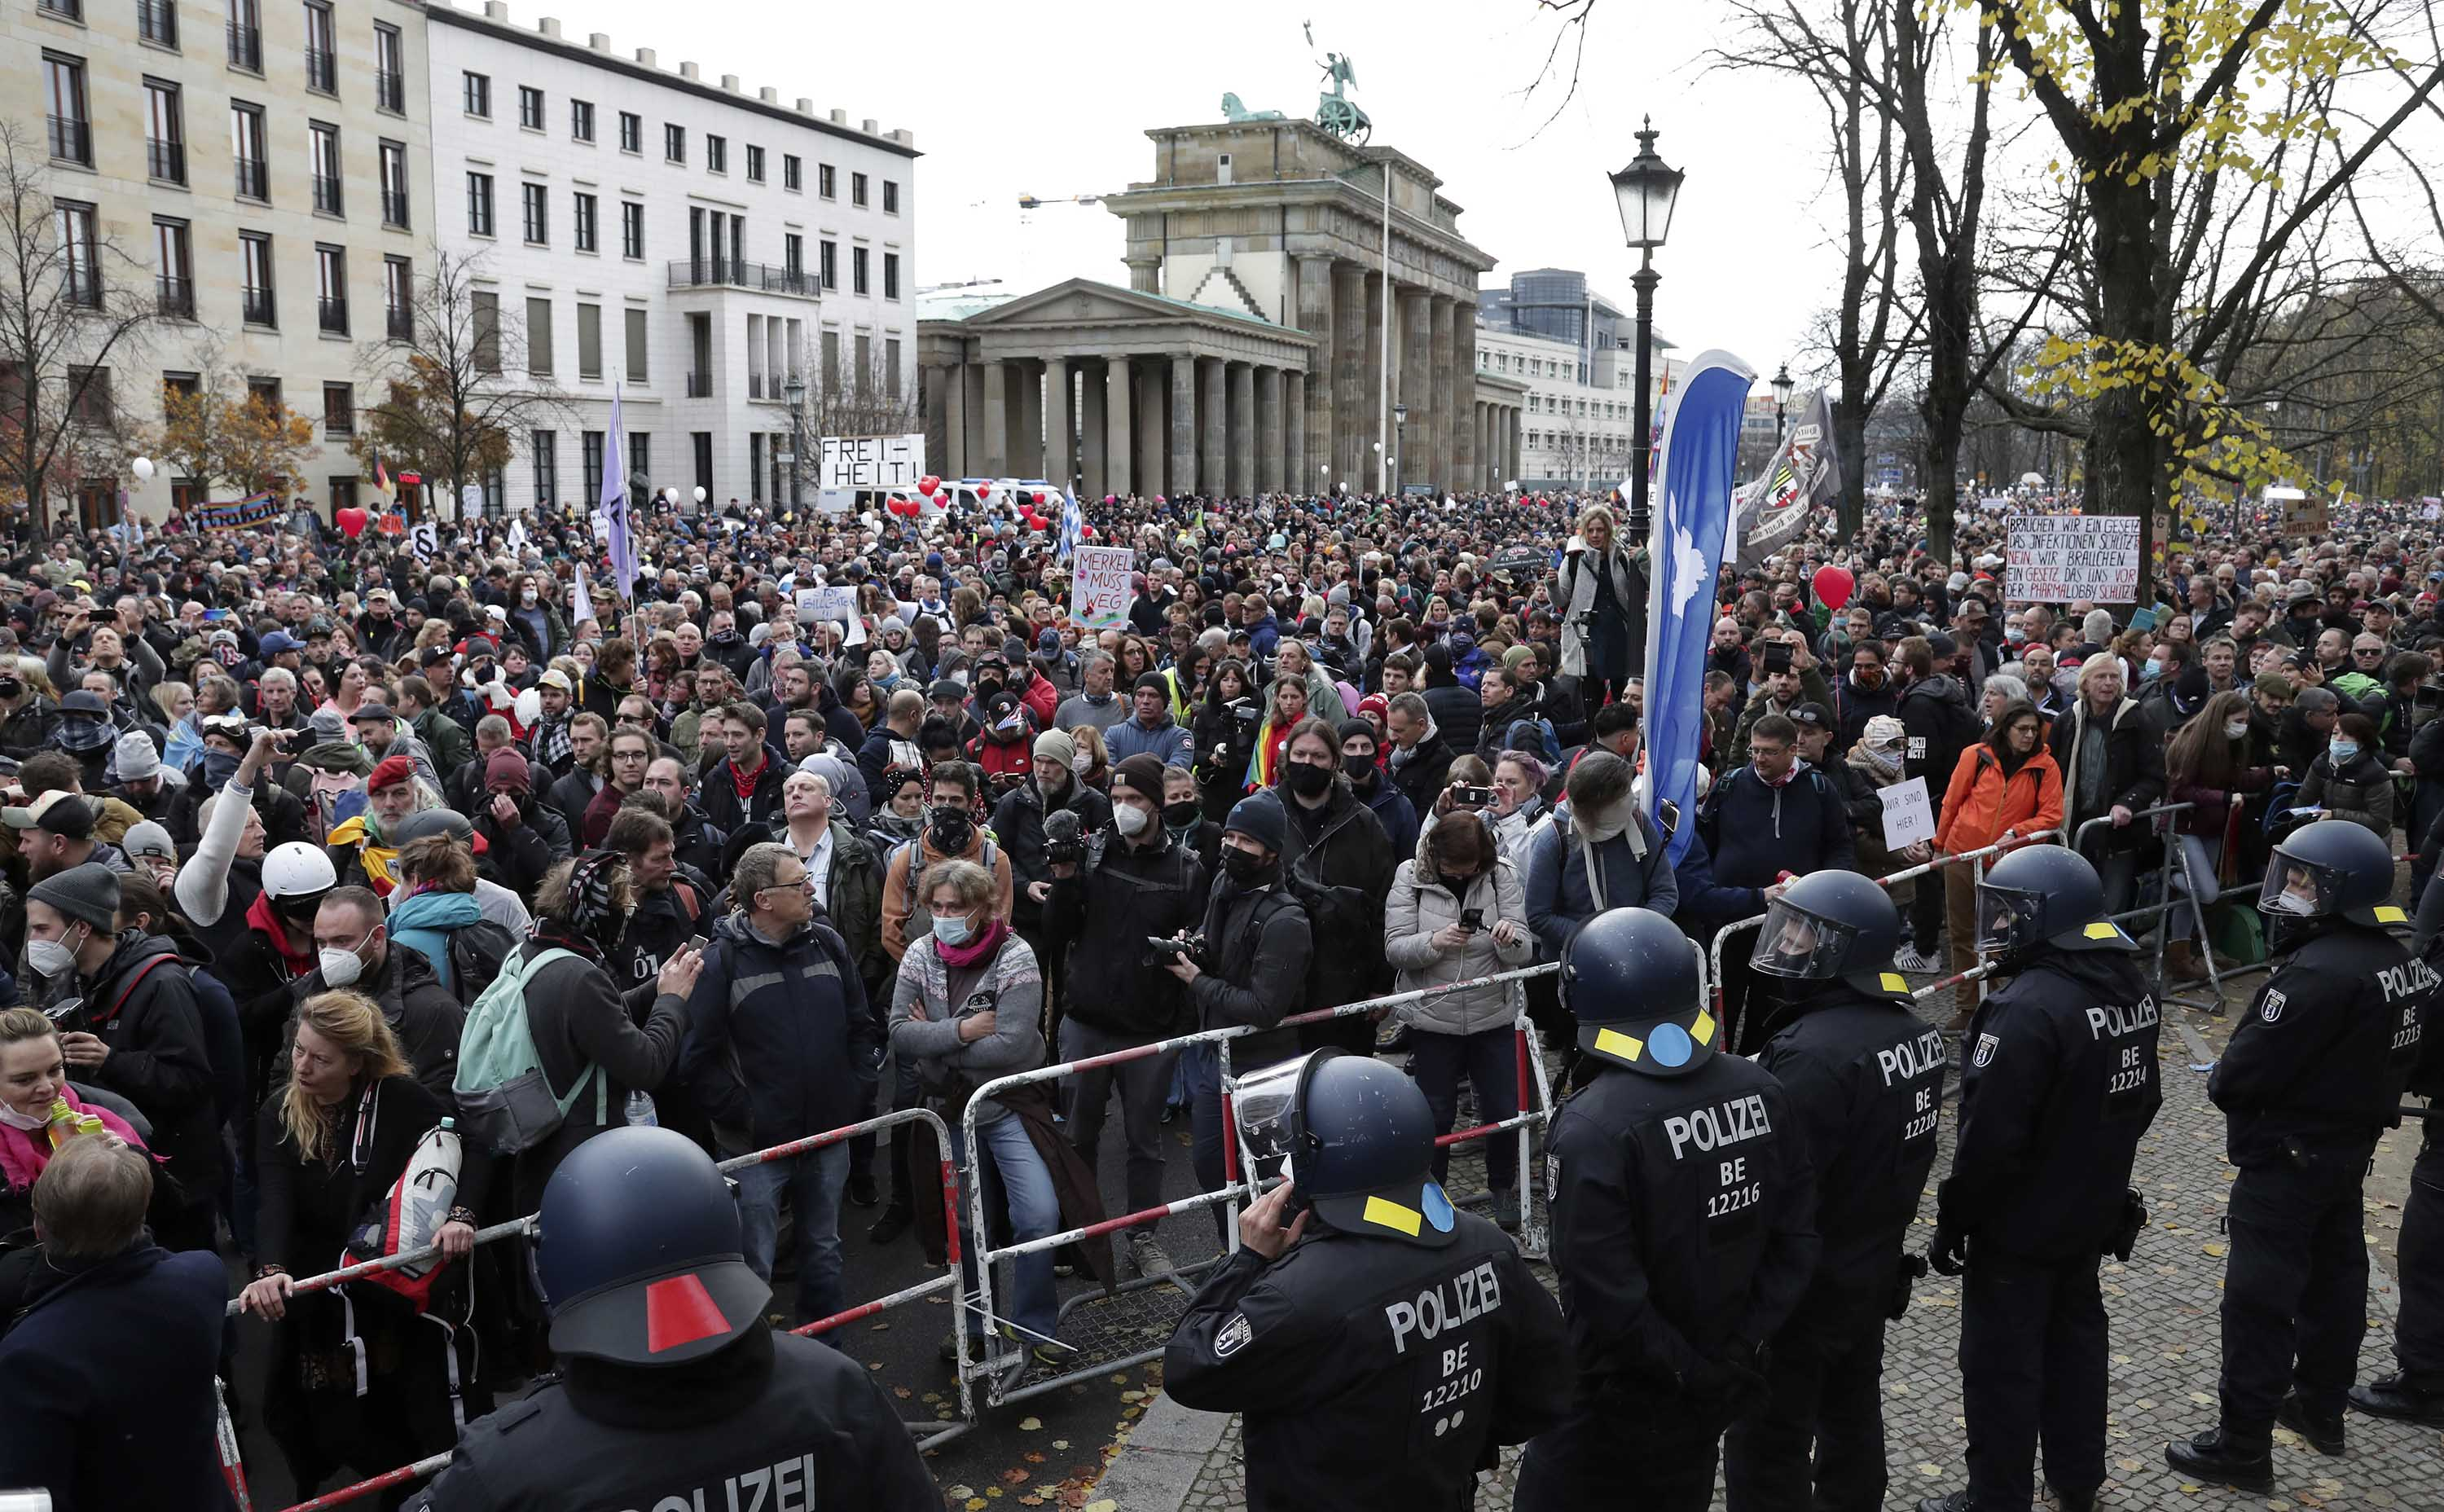 Police officers block a road as people attend a protest rally in front of the Brandenburg Gate in Berlin, Germany, on Wednesday.